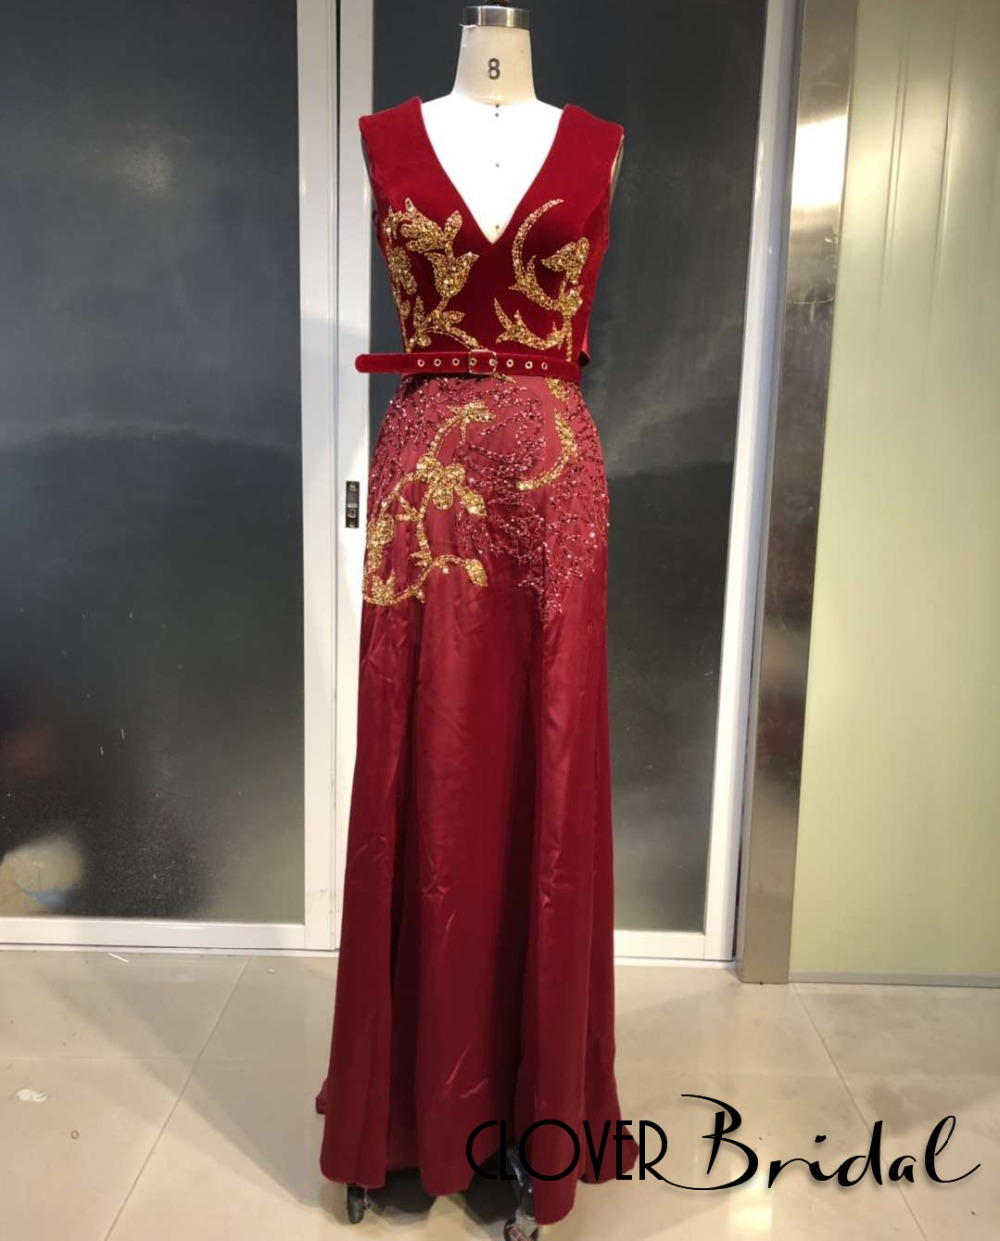 CloverBridal 2019 latest V neck & back beaded patterns burgundy velvet   prom     dress   with waistband ocean blue satin gown